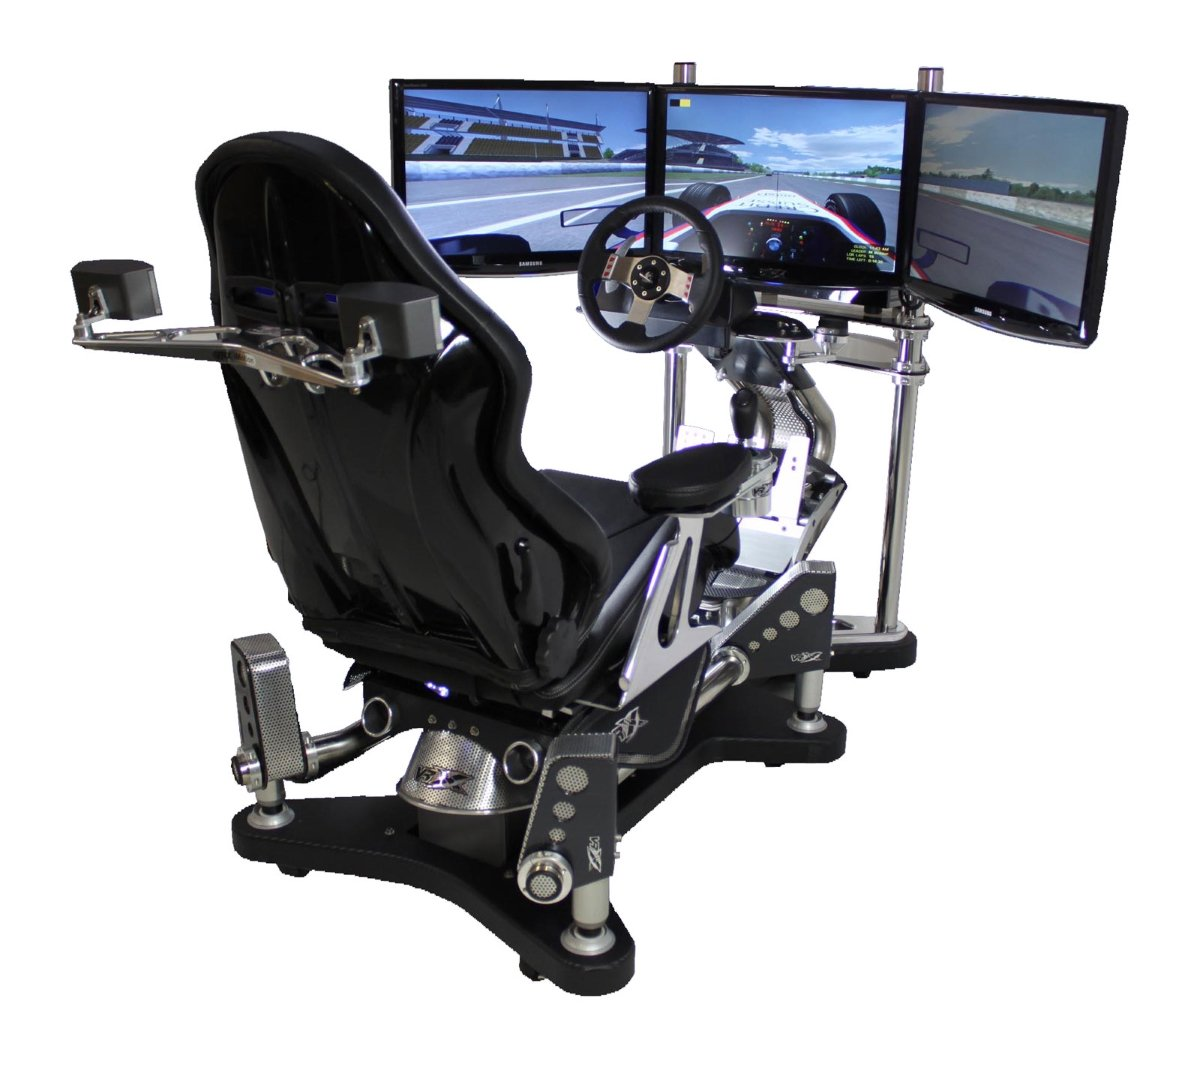 best video game chair banquet covers buy racing gaming home furniture design